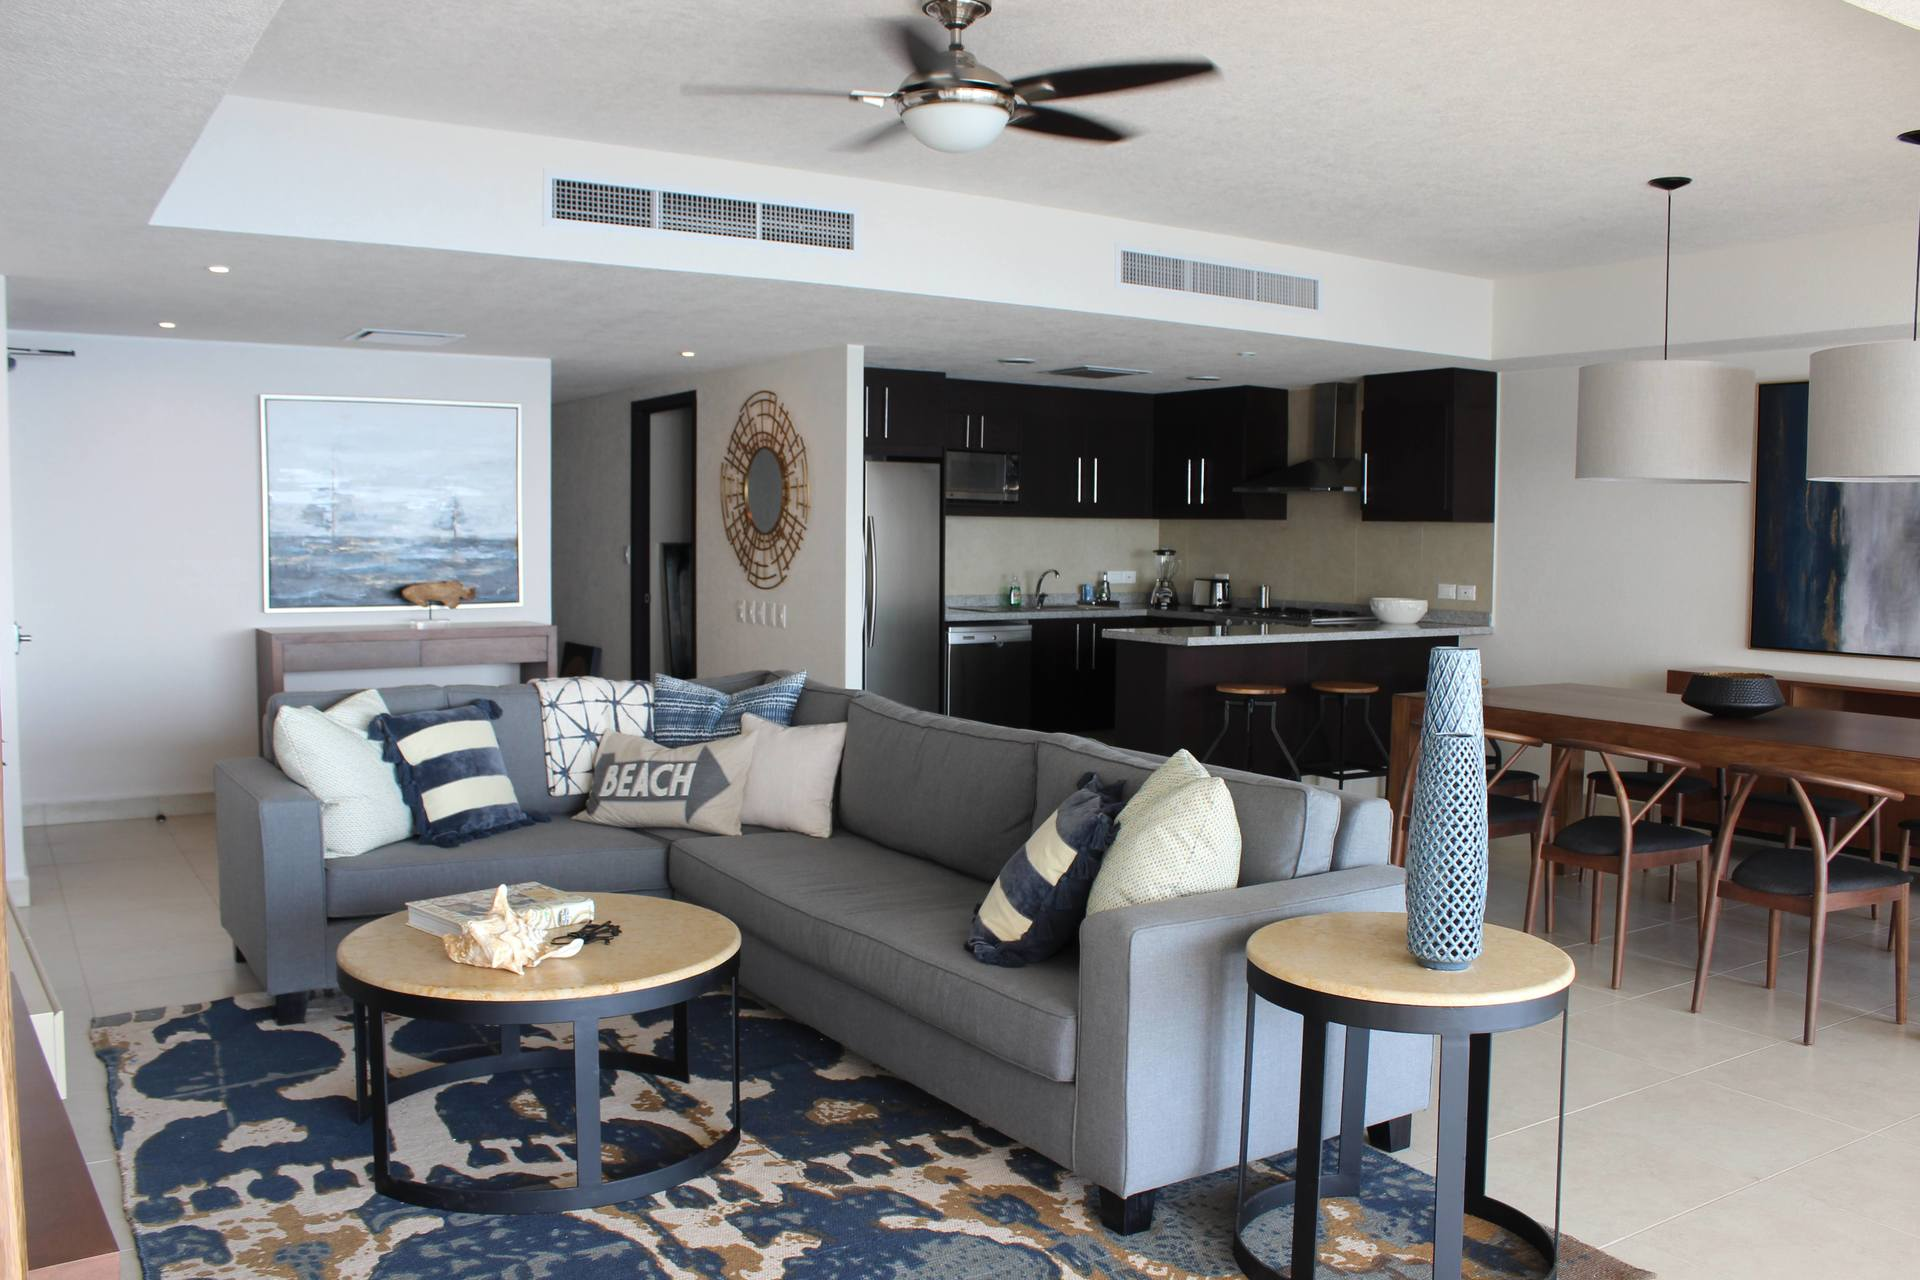 Modern and contemporary living room, couch, kitchen, and dining table of this 2 bedroom vacation rental condo of Grand Venetian Puerto Vallarta